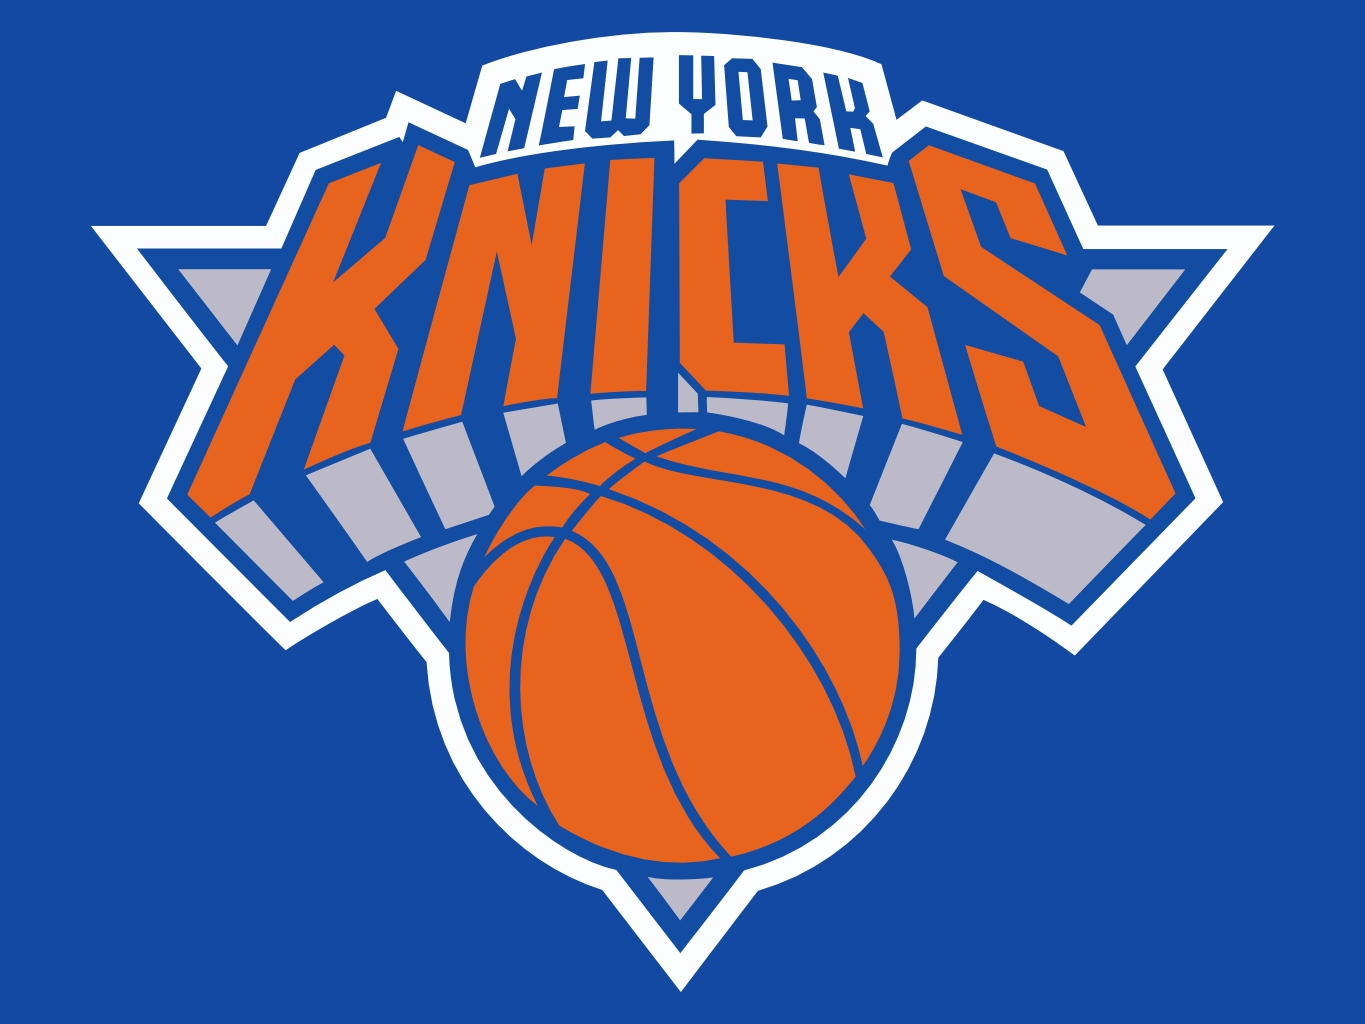 Logo for New York Knicks free image download